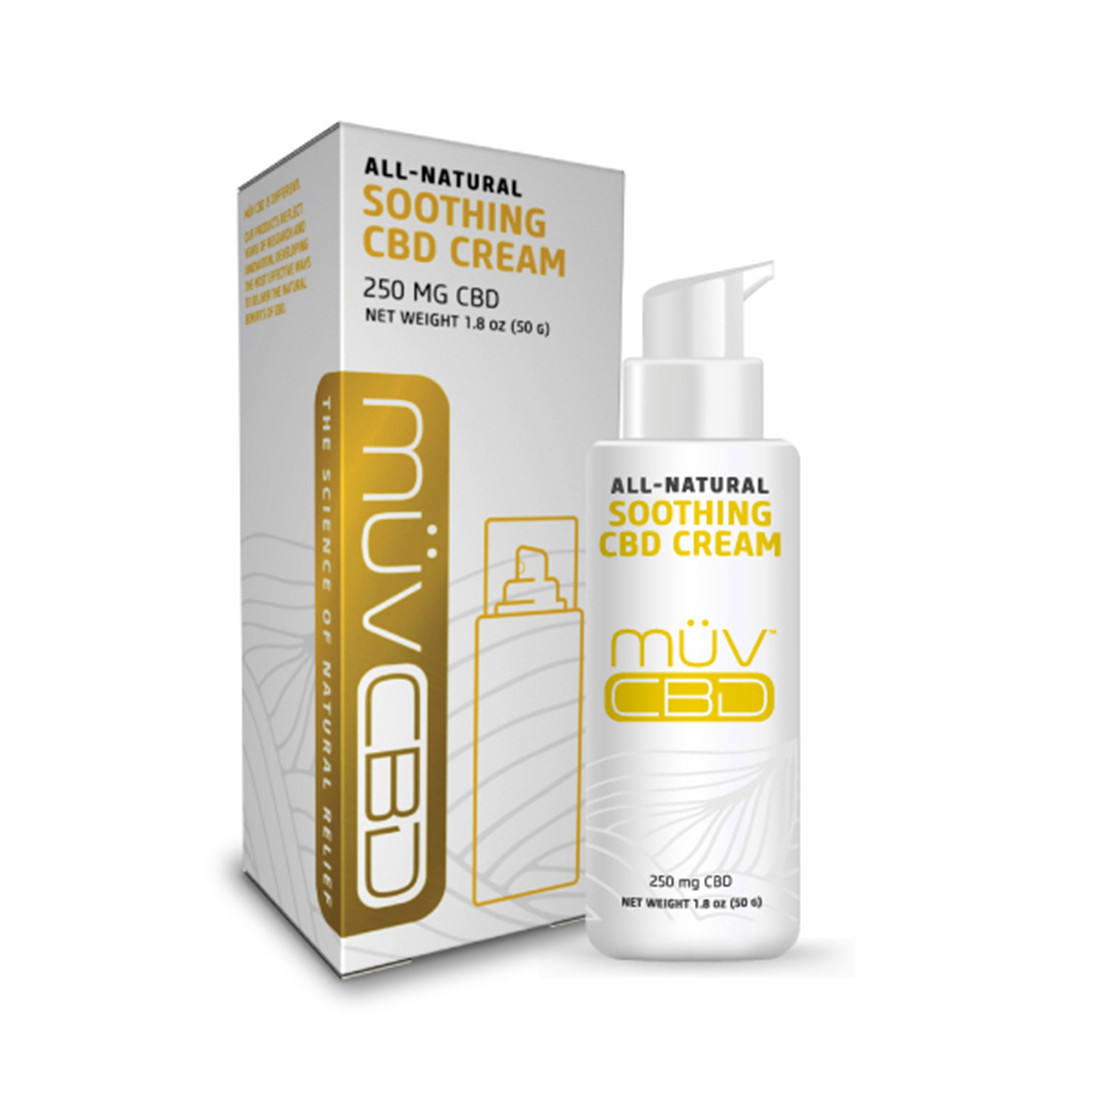 Branded, Premium Soothing CBD Cream, 250 mg, ready to sell in your retail channel. SAVE 20% ON YOUR FIRST ORDER!